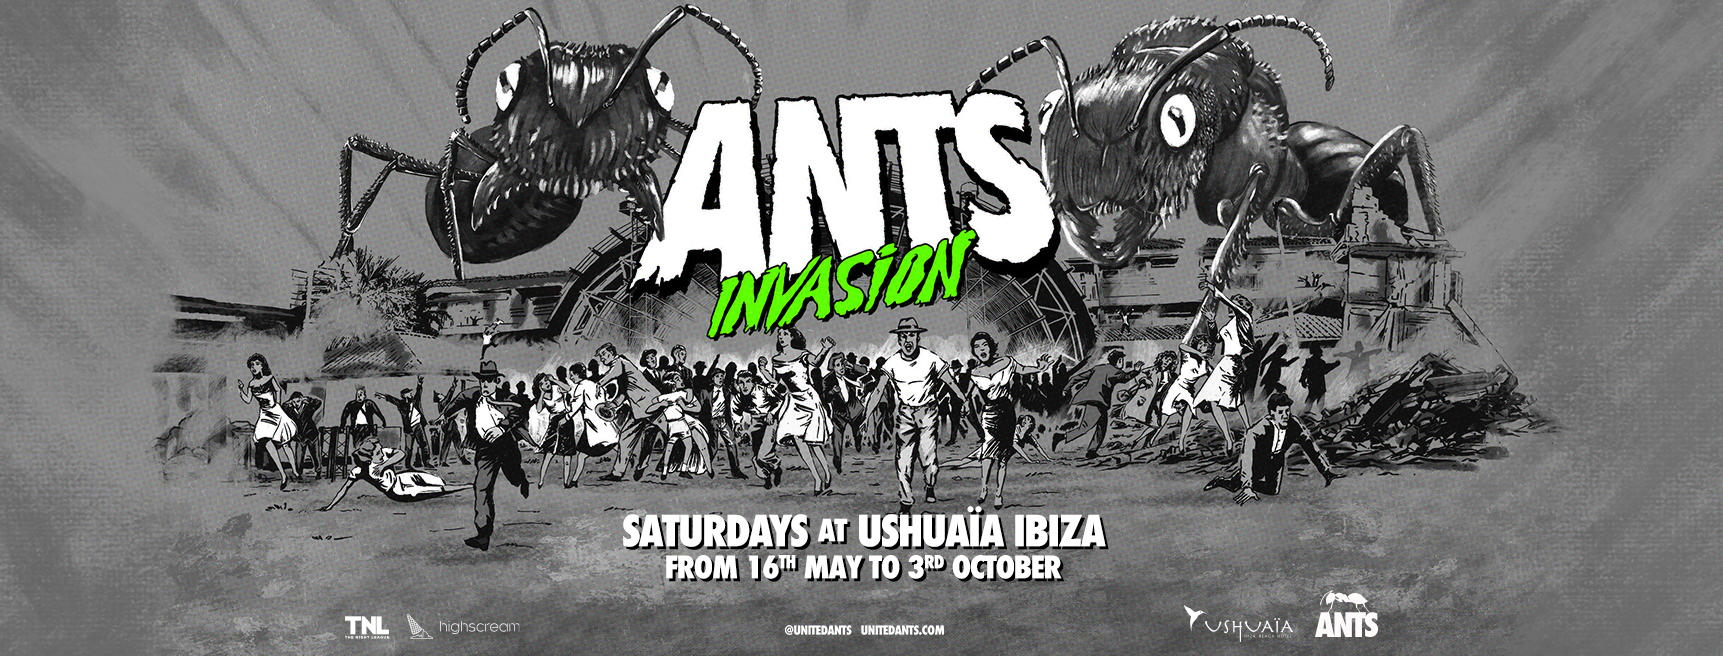 ANTS 2020 comes back to saturday in Ushuaia Ibiza, tickets ANTS 2020